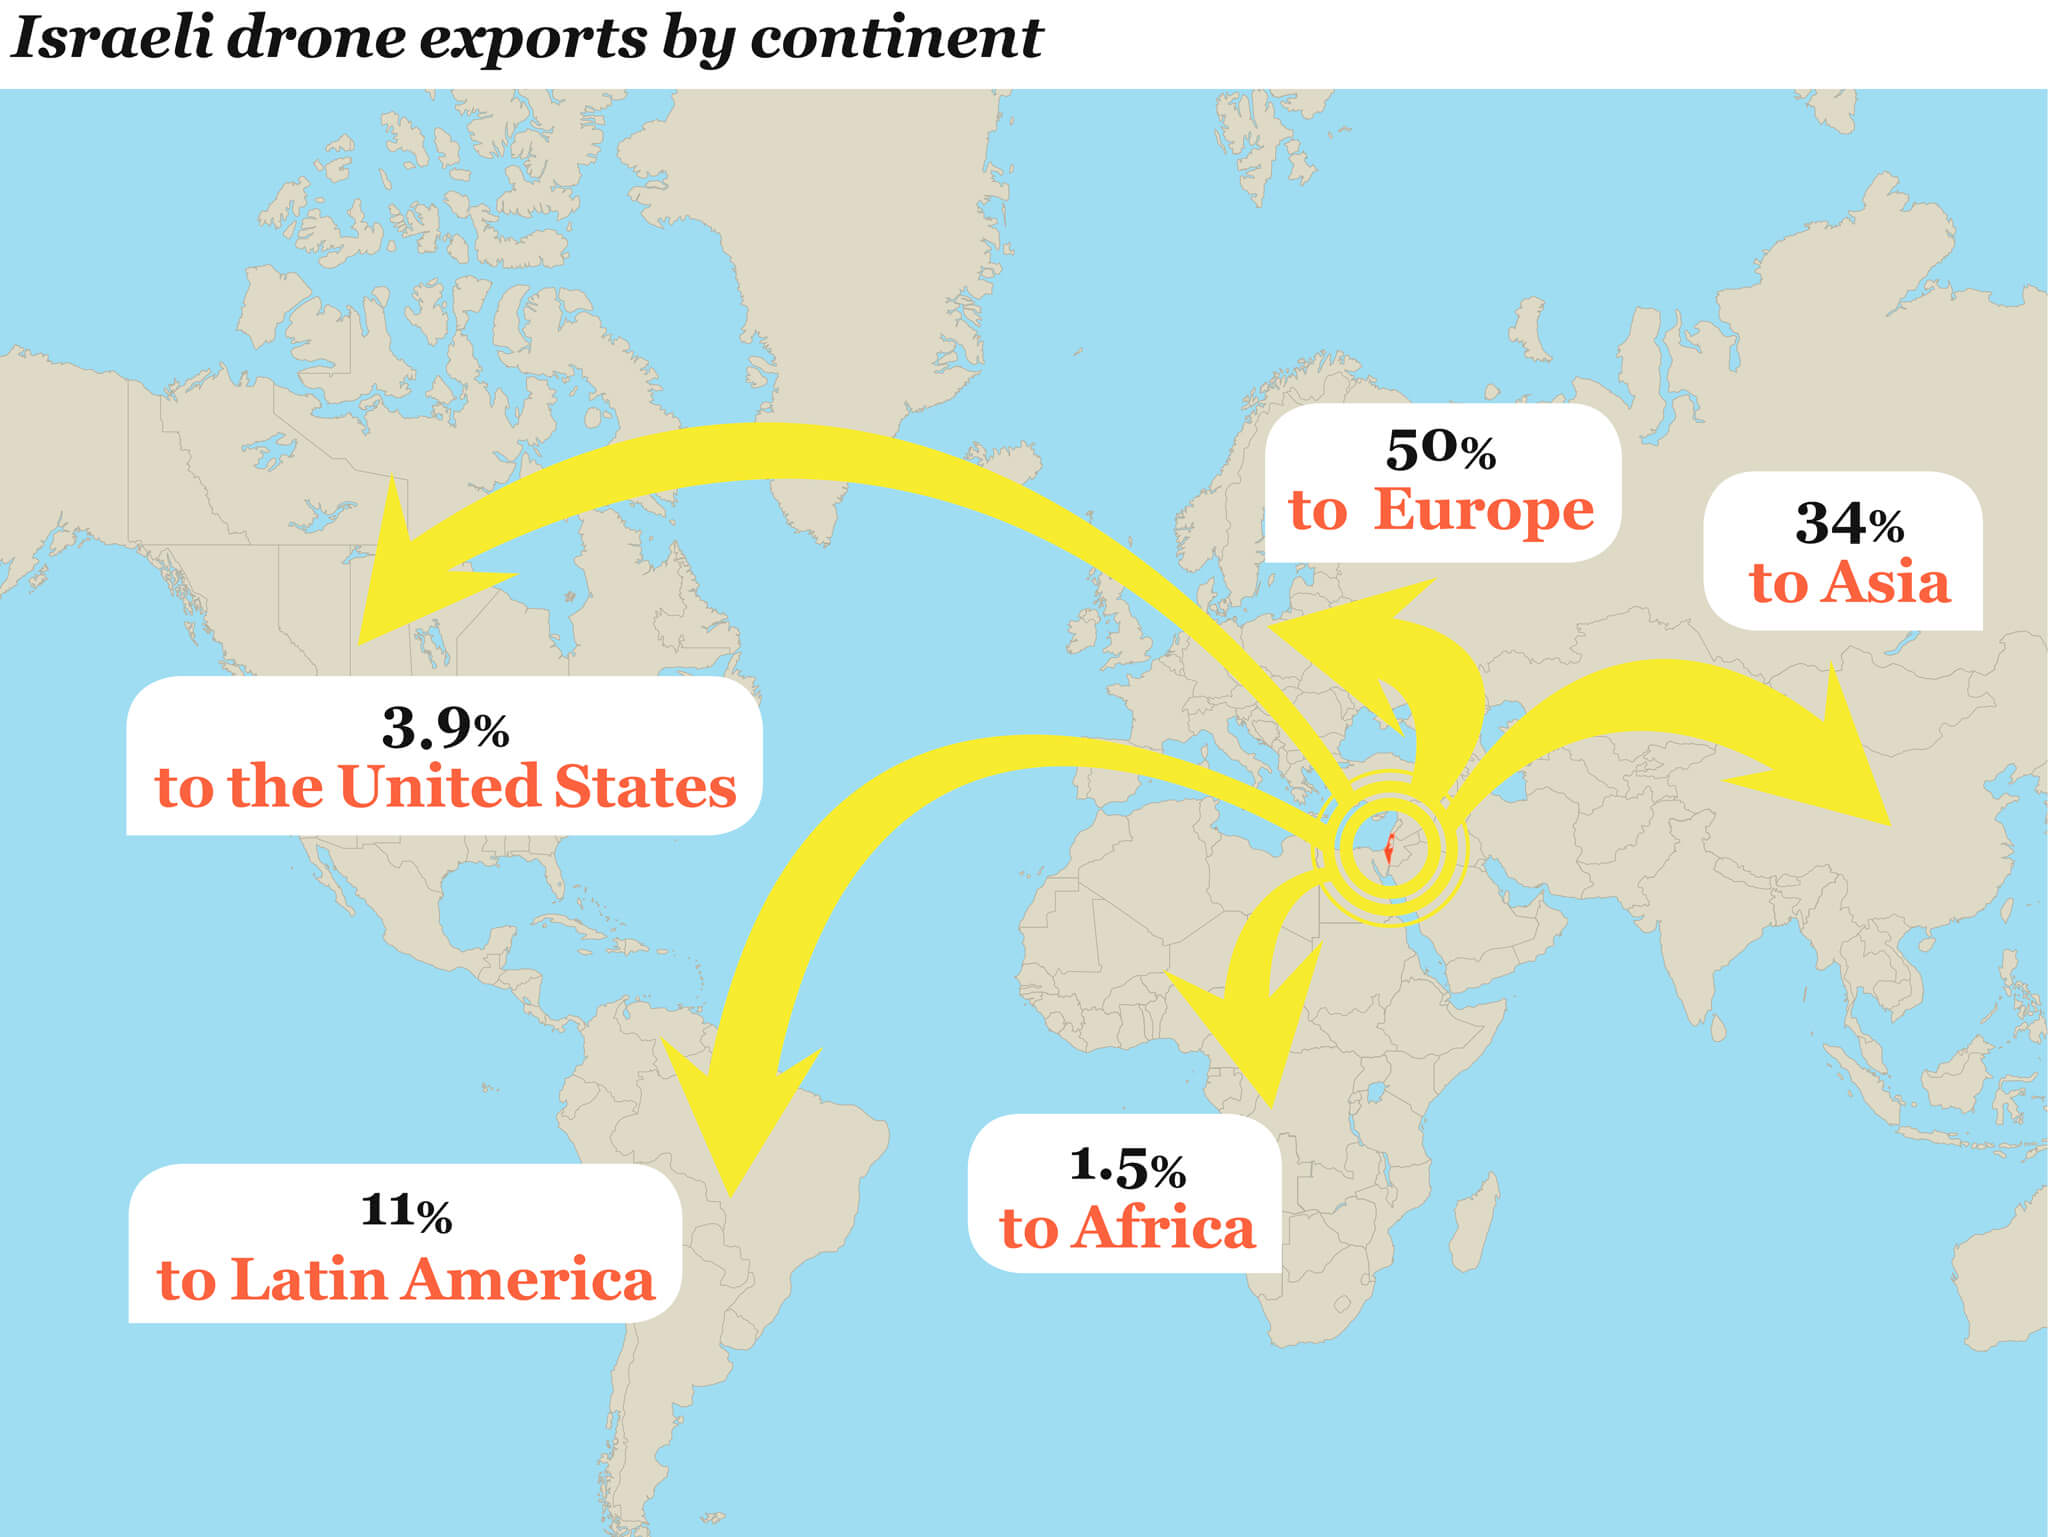 Israels growing arms export languages of the world israeli drone export map gumiabroncs Image collections